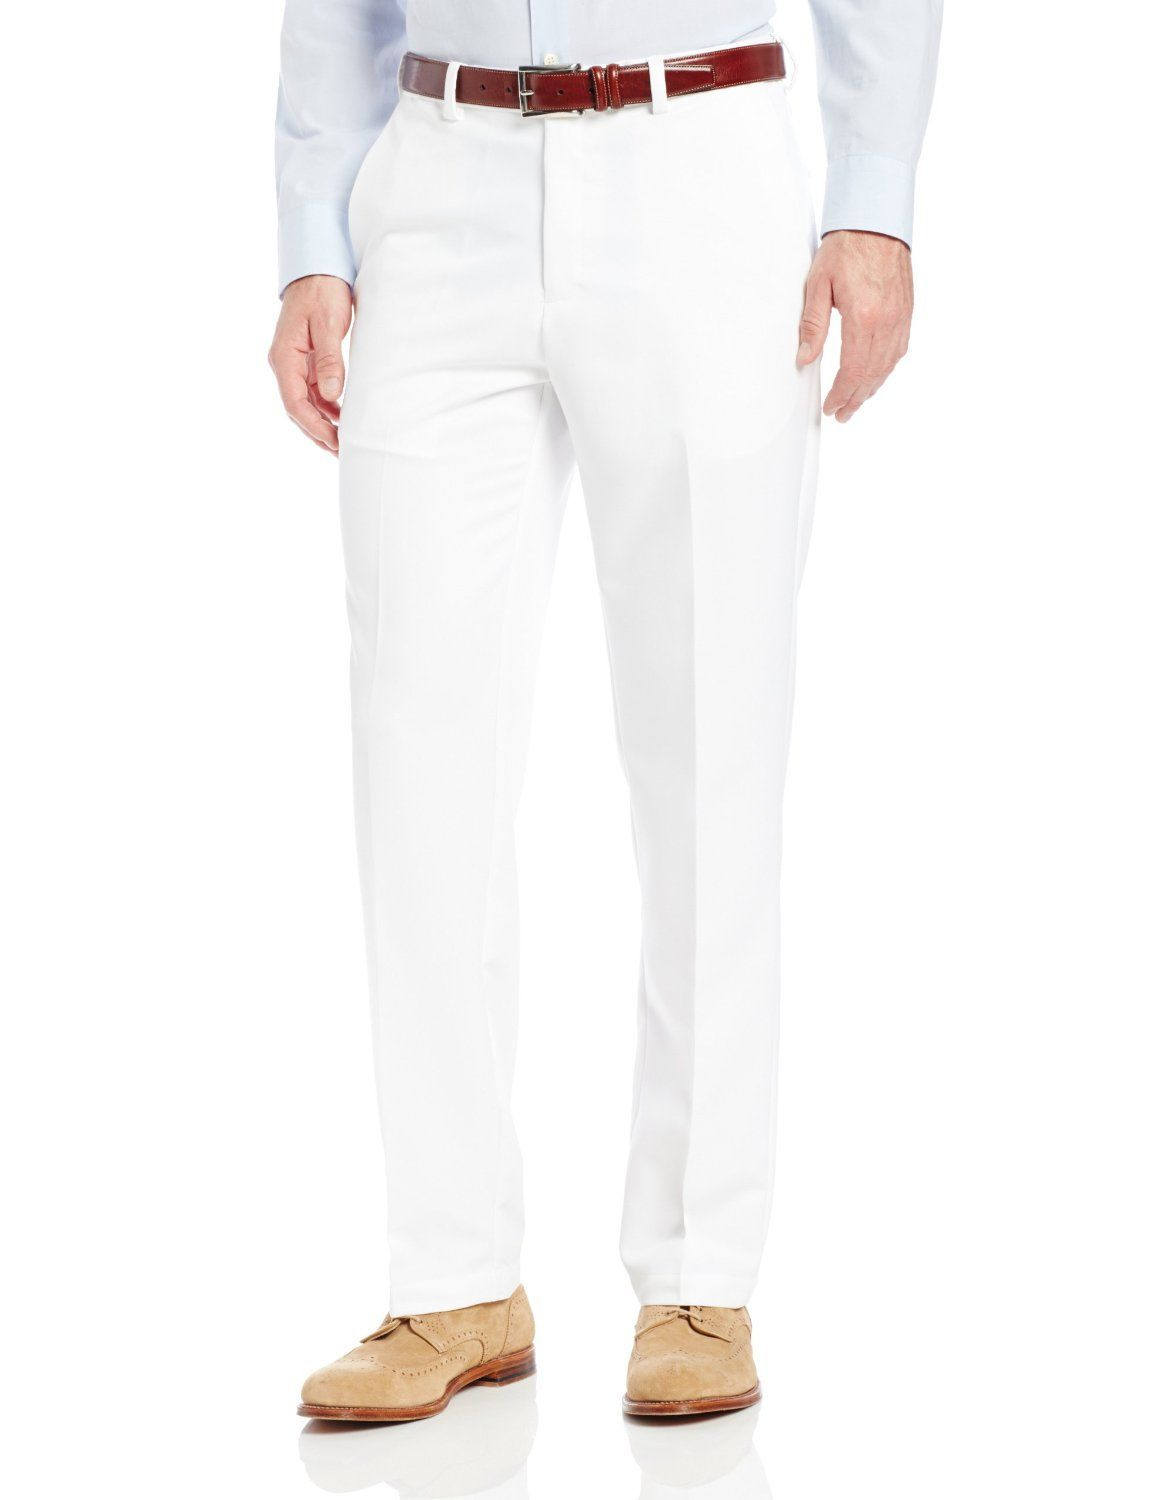 White Dress Pants - Dress Xy